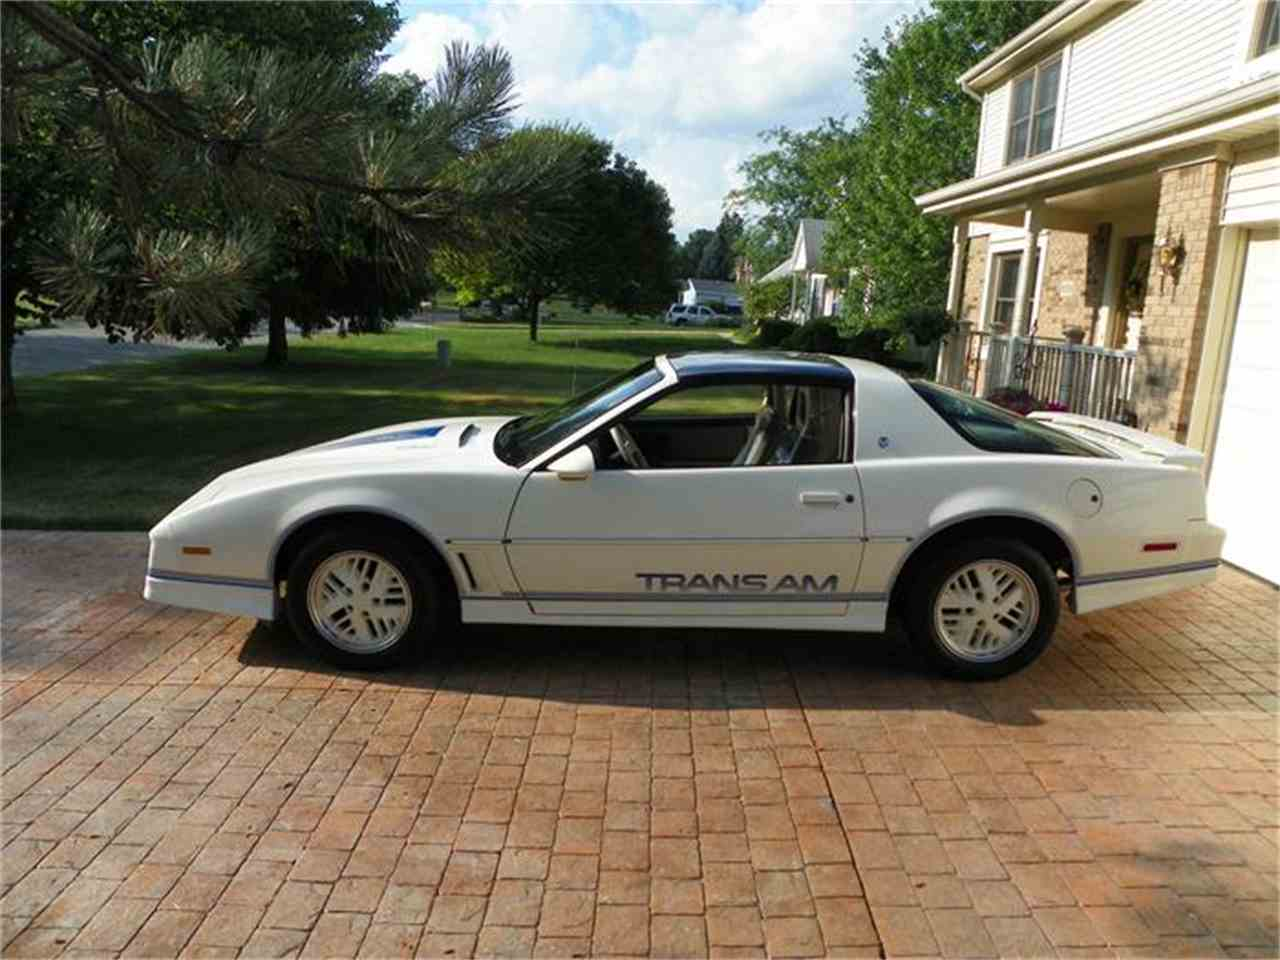 Large Picture of 1984 Pontiac Firebird Trans Am located in Temperance Michigan - $19,000.00 Offered by a Private Seller - 7GHL